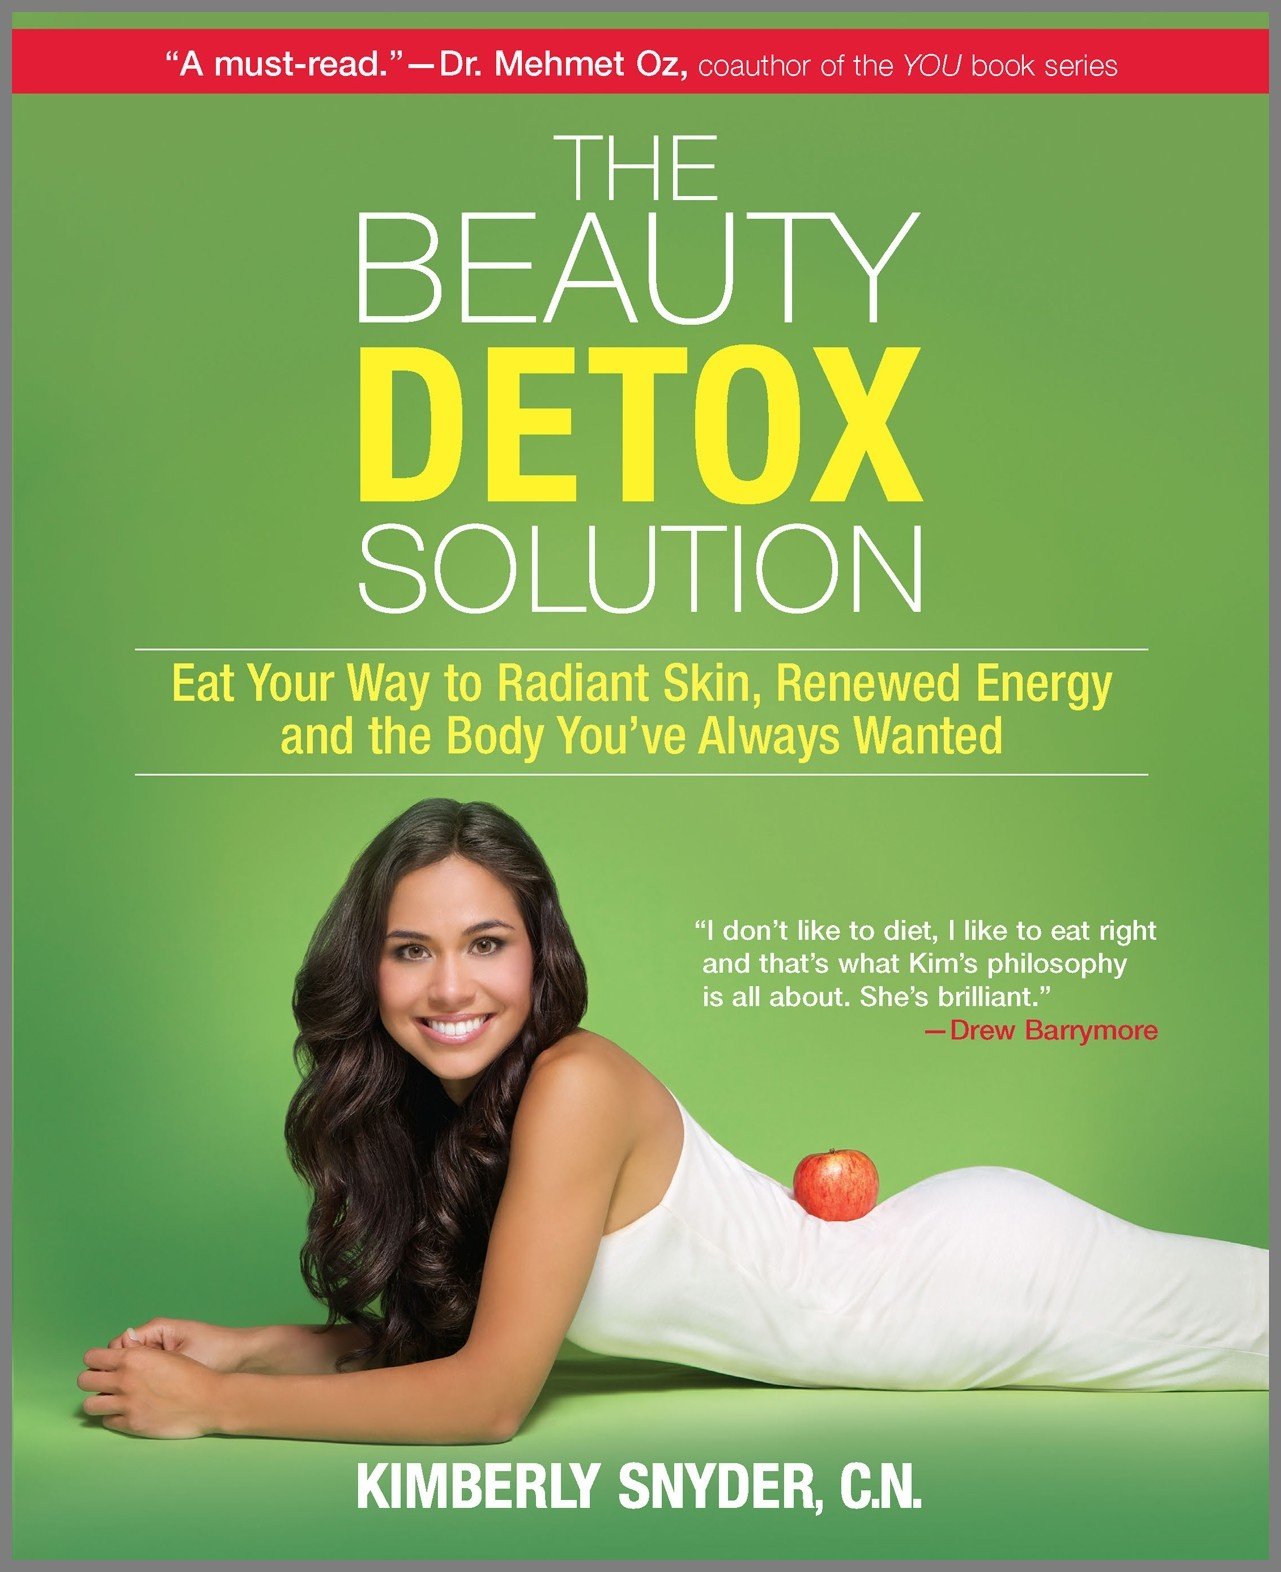 The Beauty Detox Solution Eat Your Way to Radiant Skin, Renewed Energy and the Body You've Always Wanted